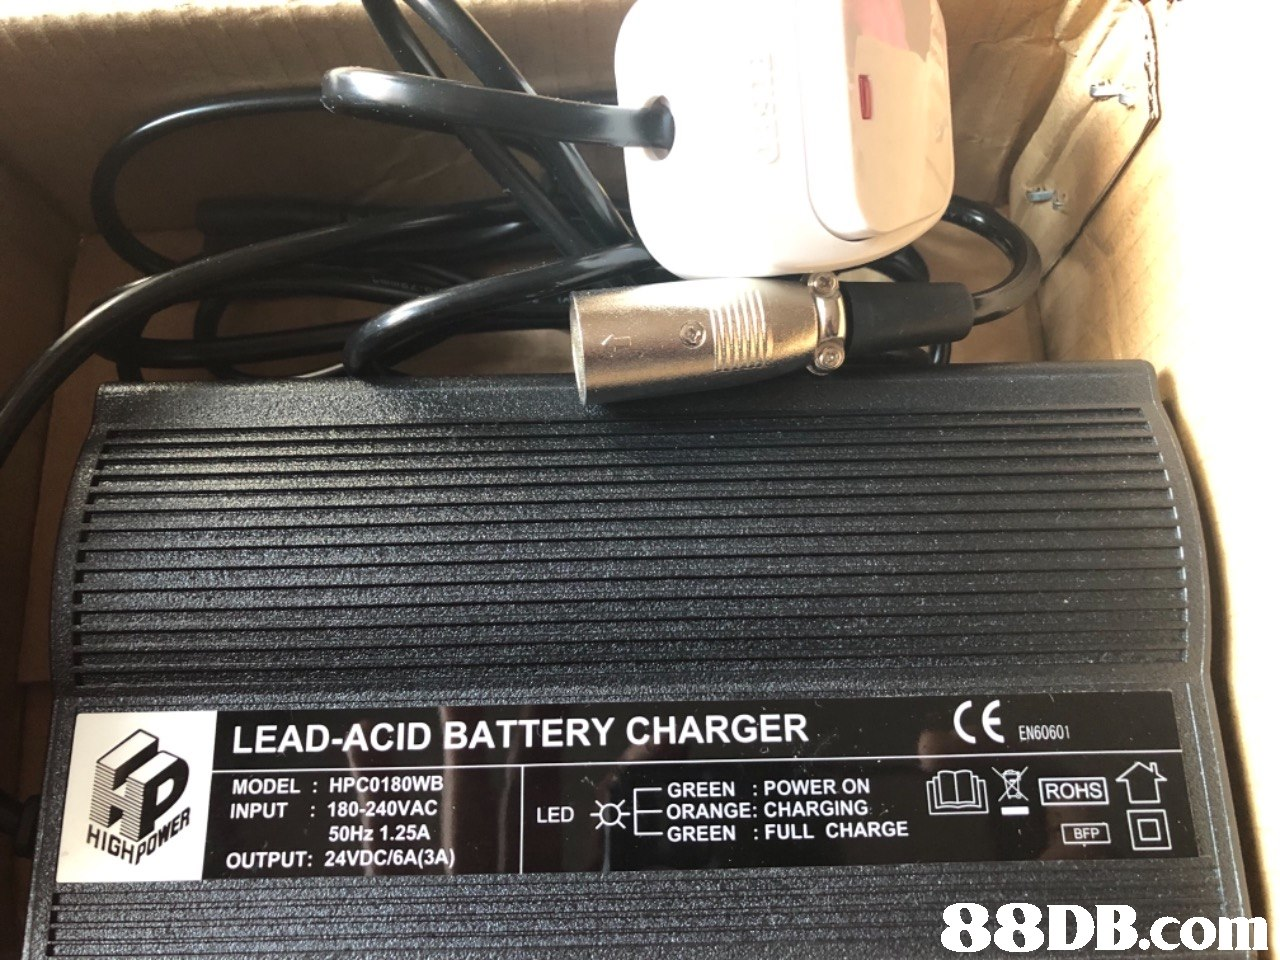 LEAD-ACID BATTERY CHARGER EN60601 MODEL: HPC0180WB INPUT 180-240VAC GREEN: POWER ON ORANGE: CHARGING GREEN: FULL CHARGE ROHS LED 50Hz 1.25A BFP OUTPUT: 24VDC/6A(3A   technology,electronics,motor vehicle,vehicle,electronic device